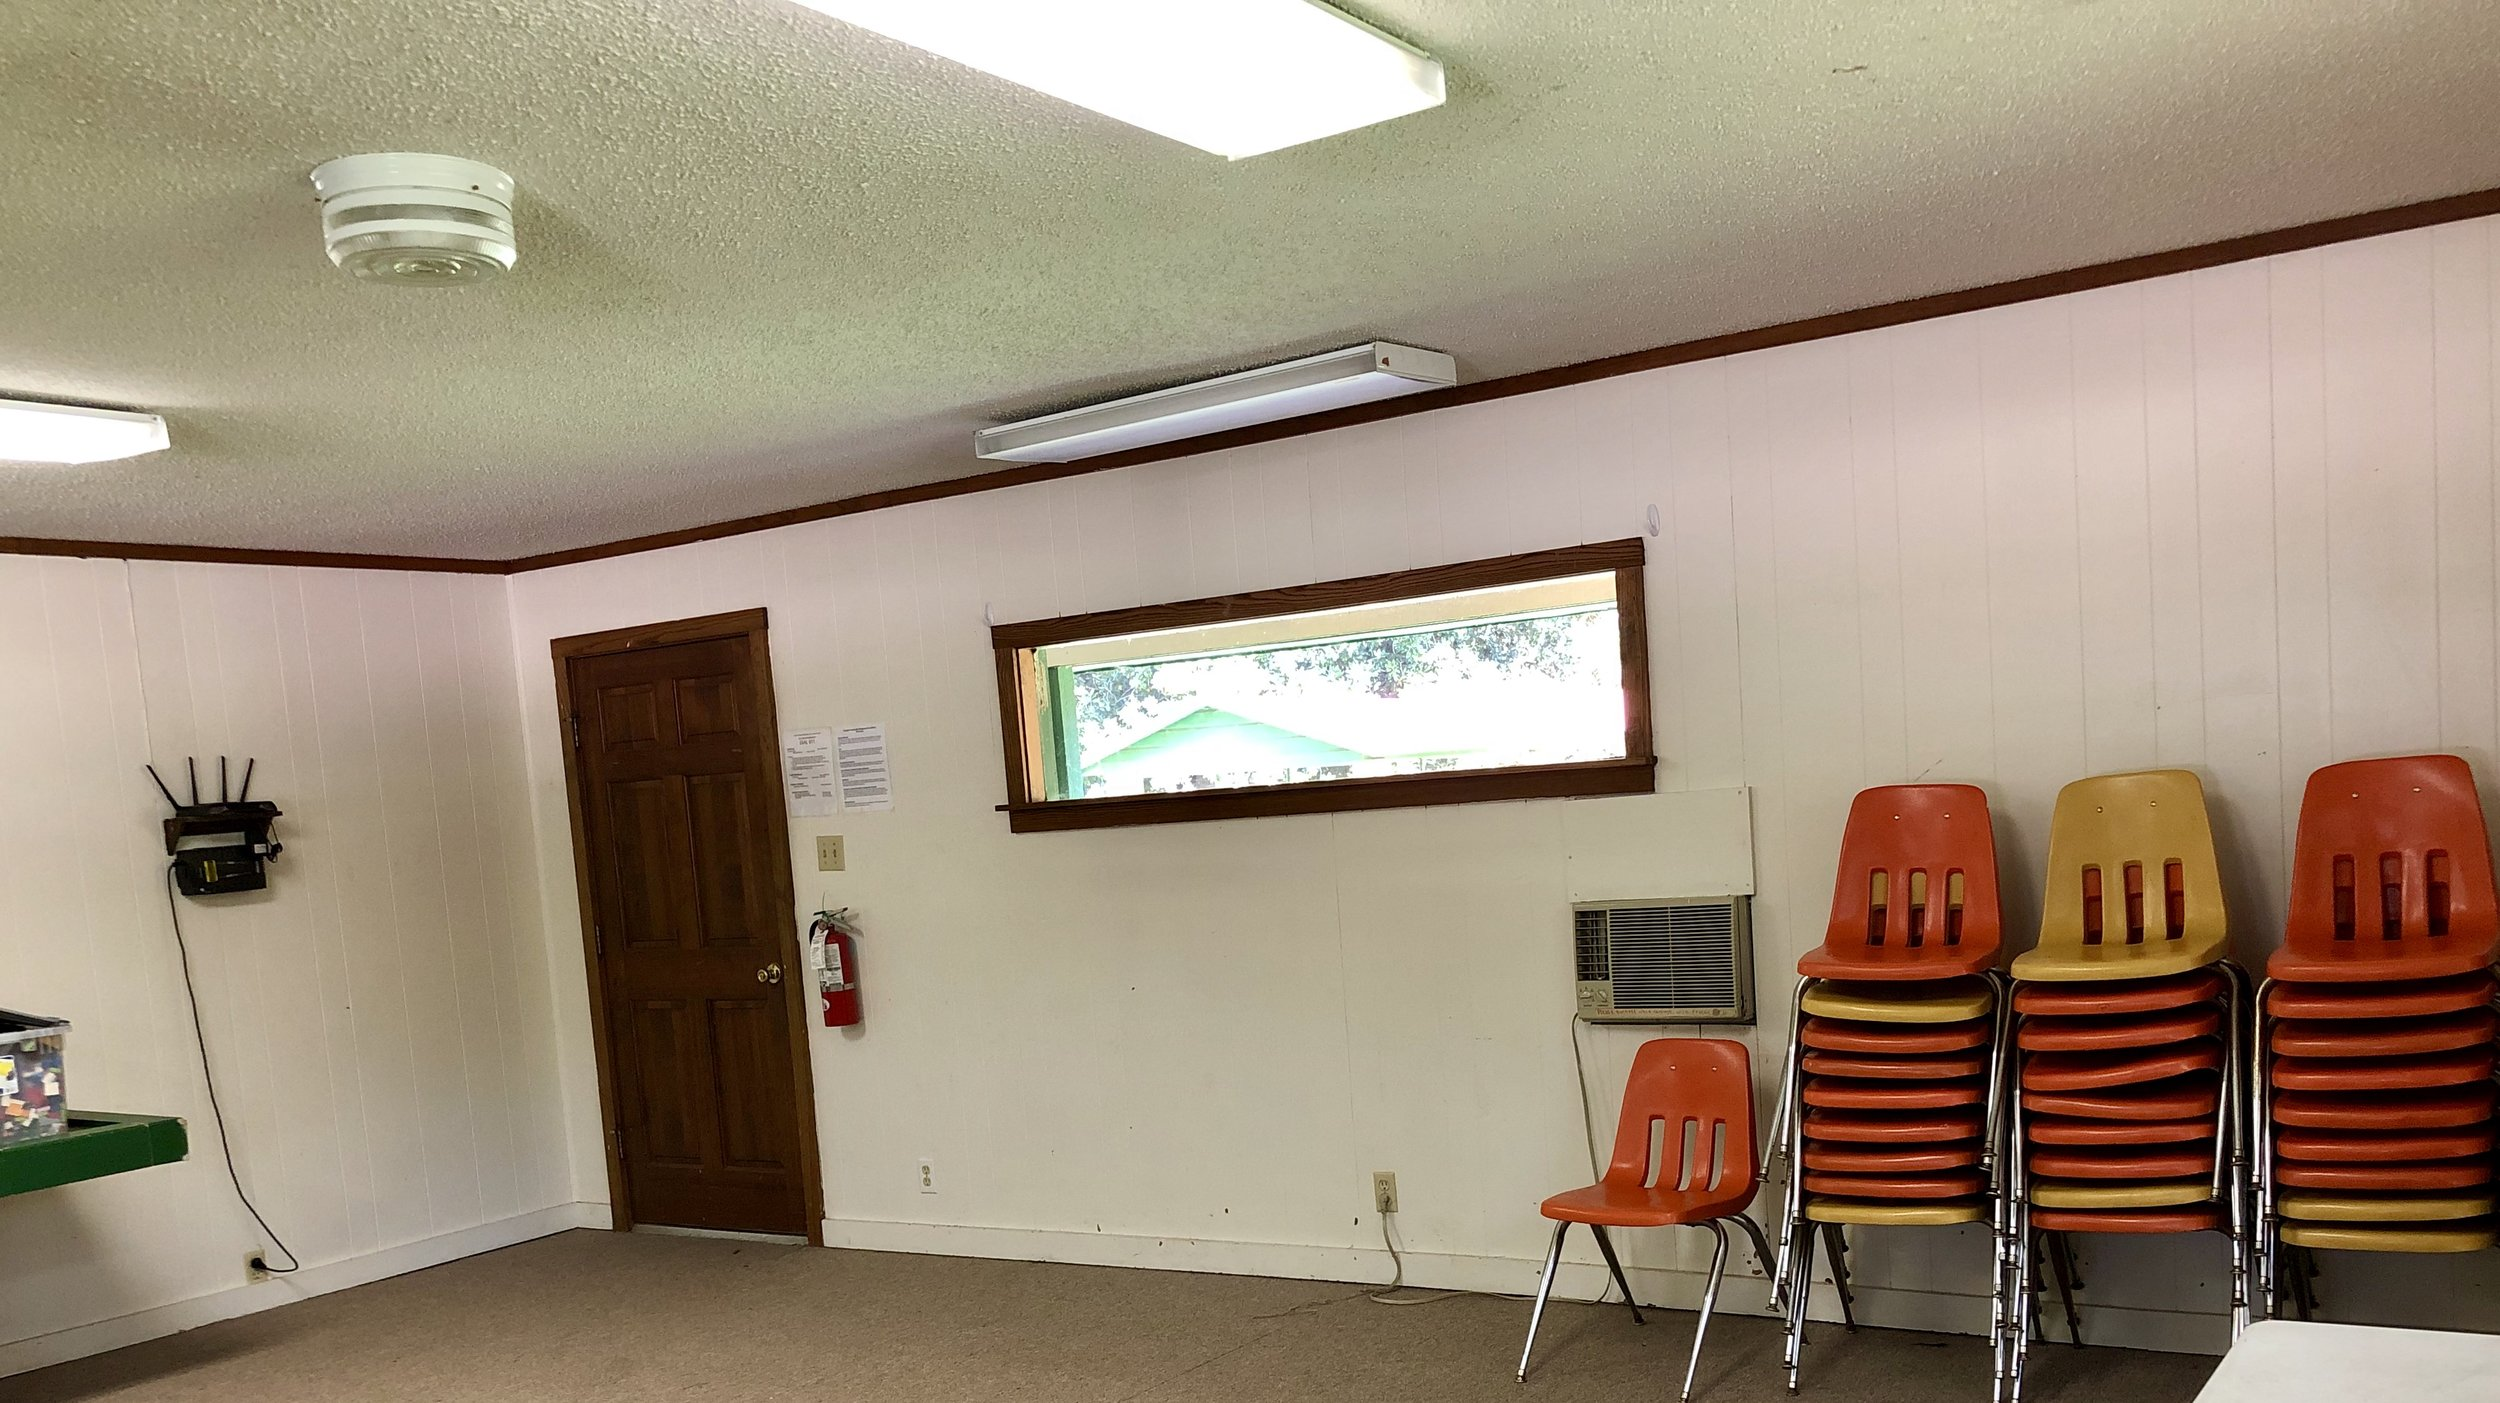 Meeting space for 50 -